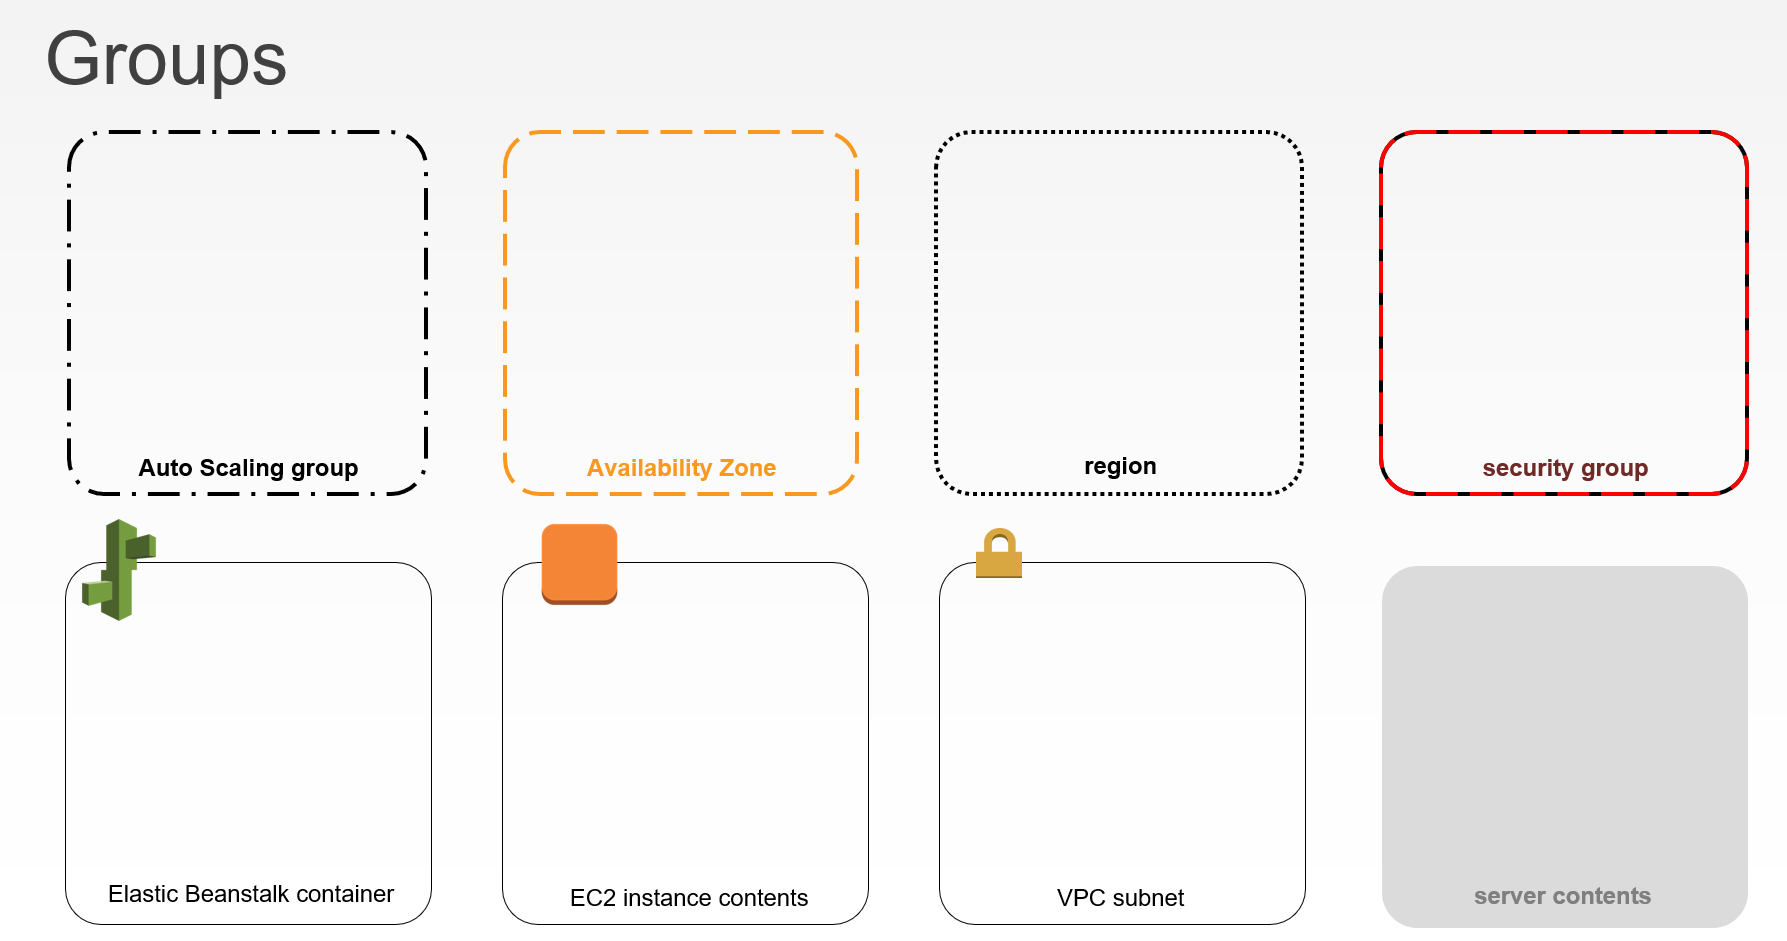 Bounding Box Color Conventions for AWS